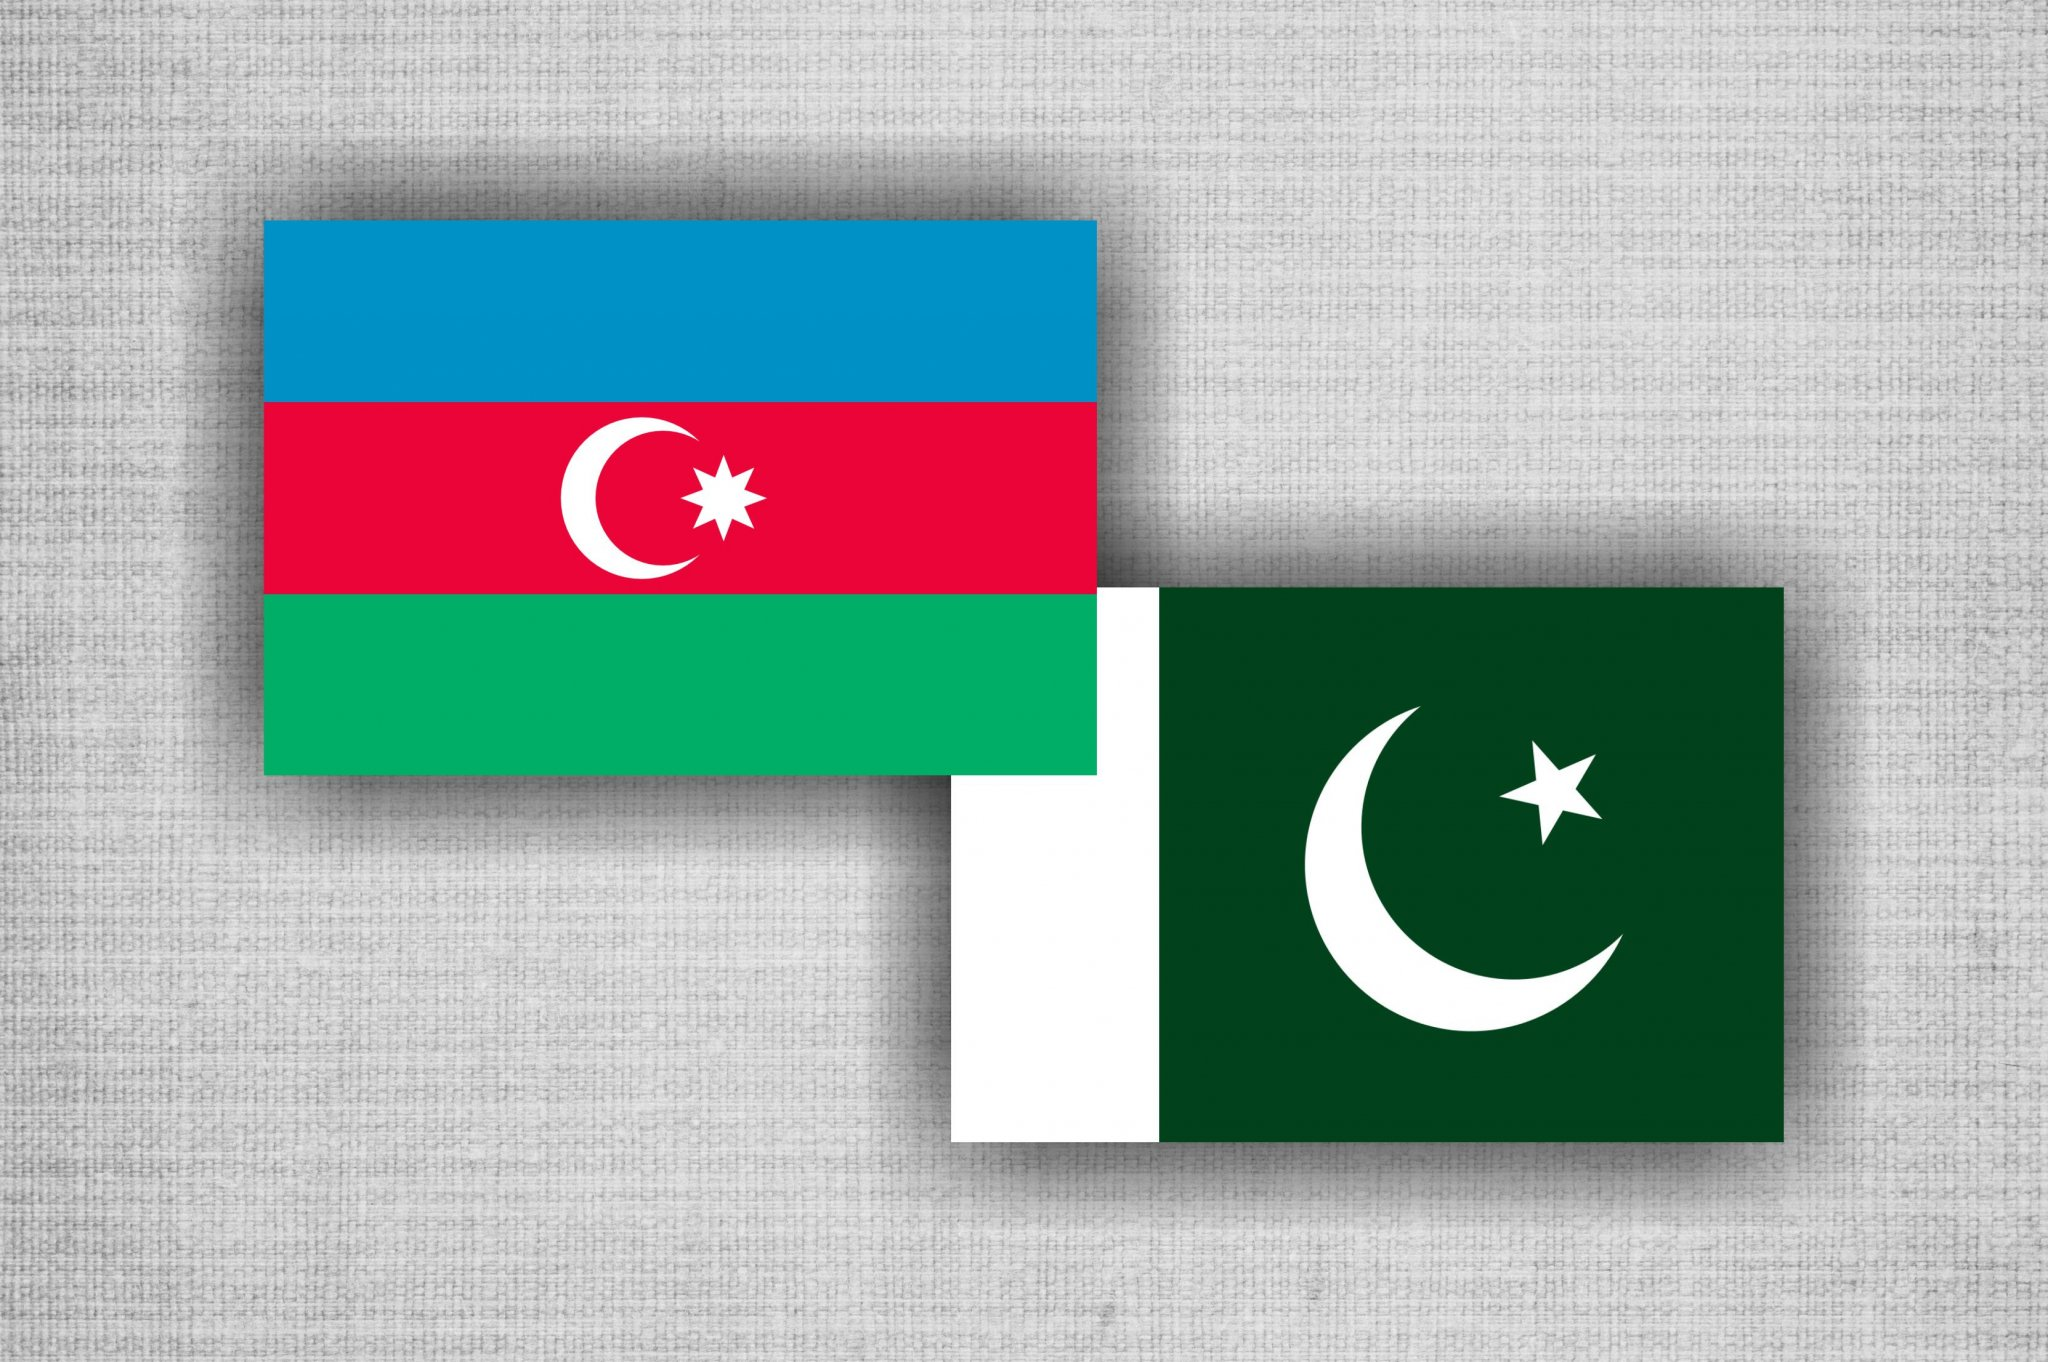 Bilateral Relationship of Pakistan and Azerbaijan entering into a New Era